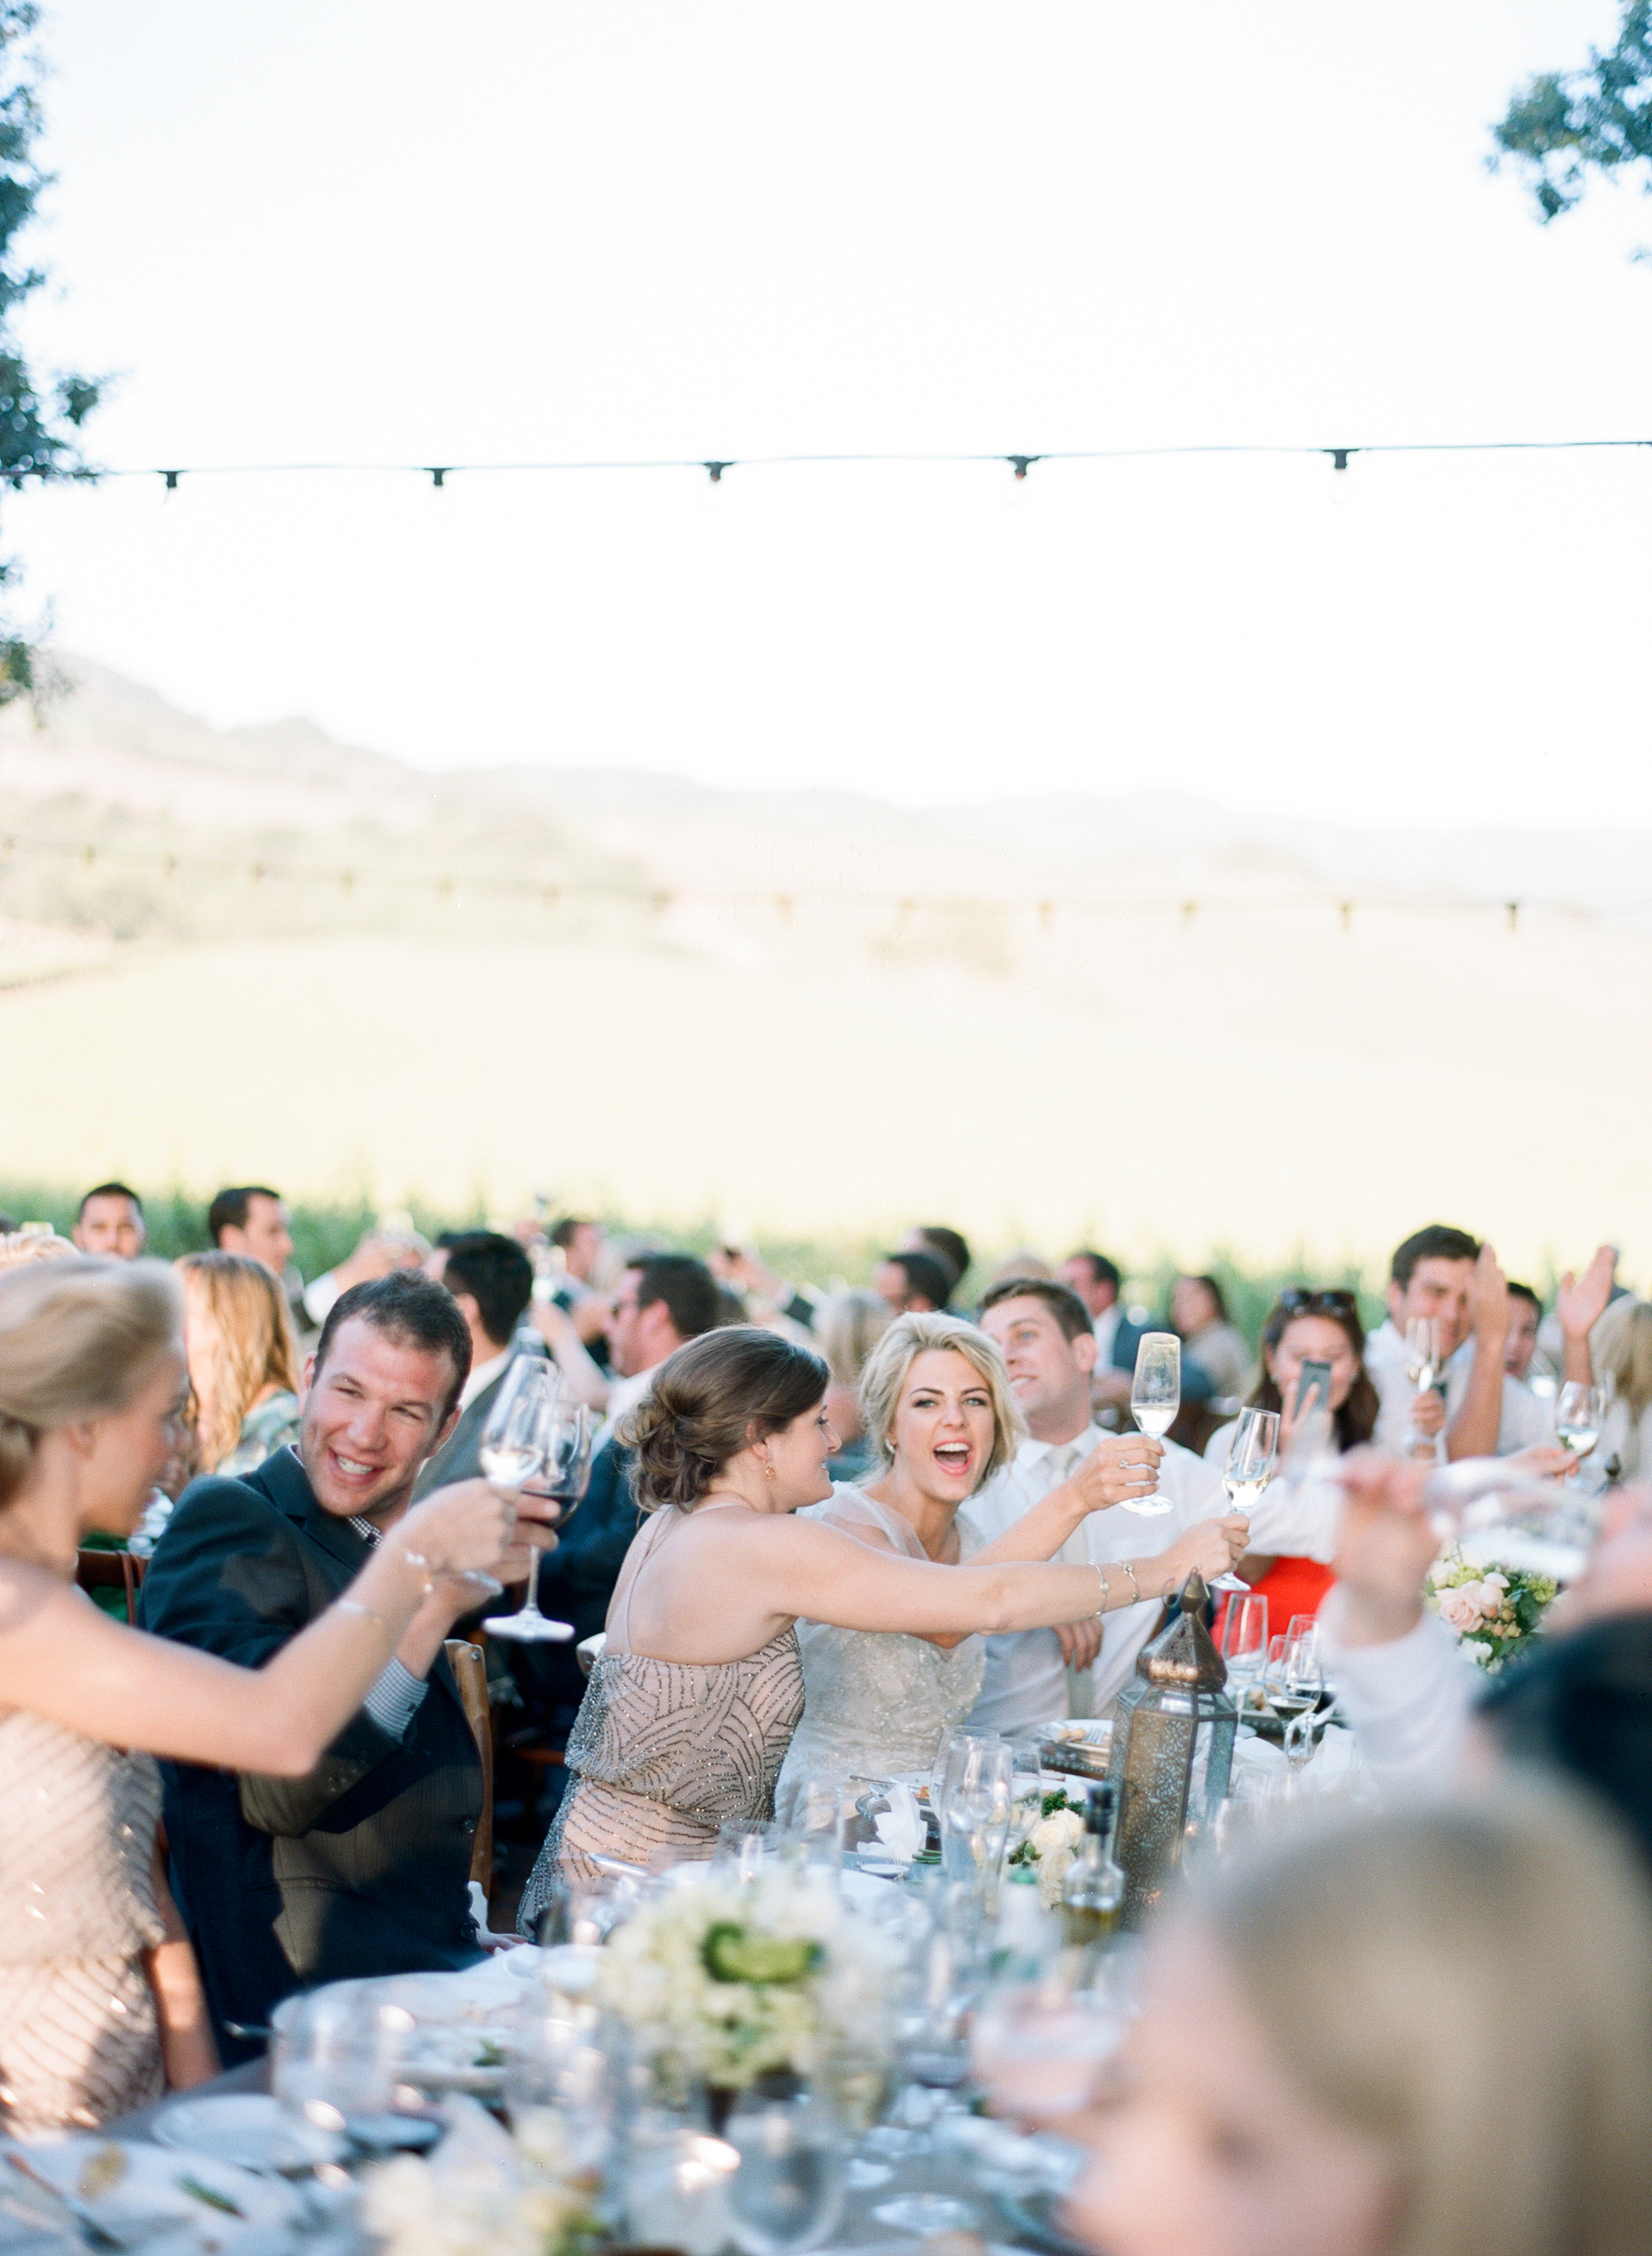 Sylvie-Gil-film-destination-photography-Kunde-winery-Napa-Valley-elegant-shabby-chic-reception-champagne-toasts